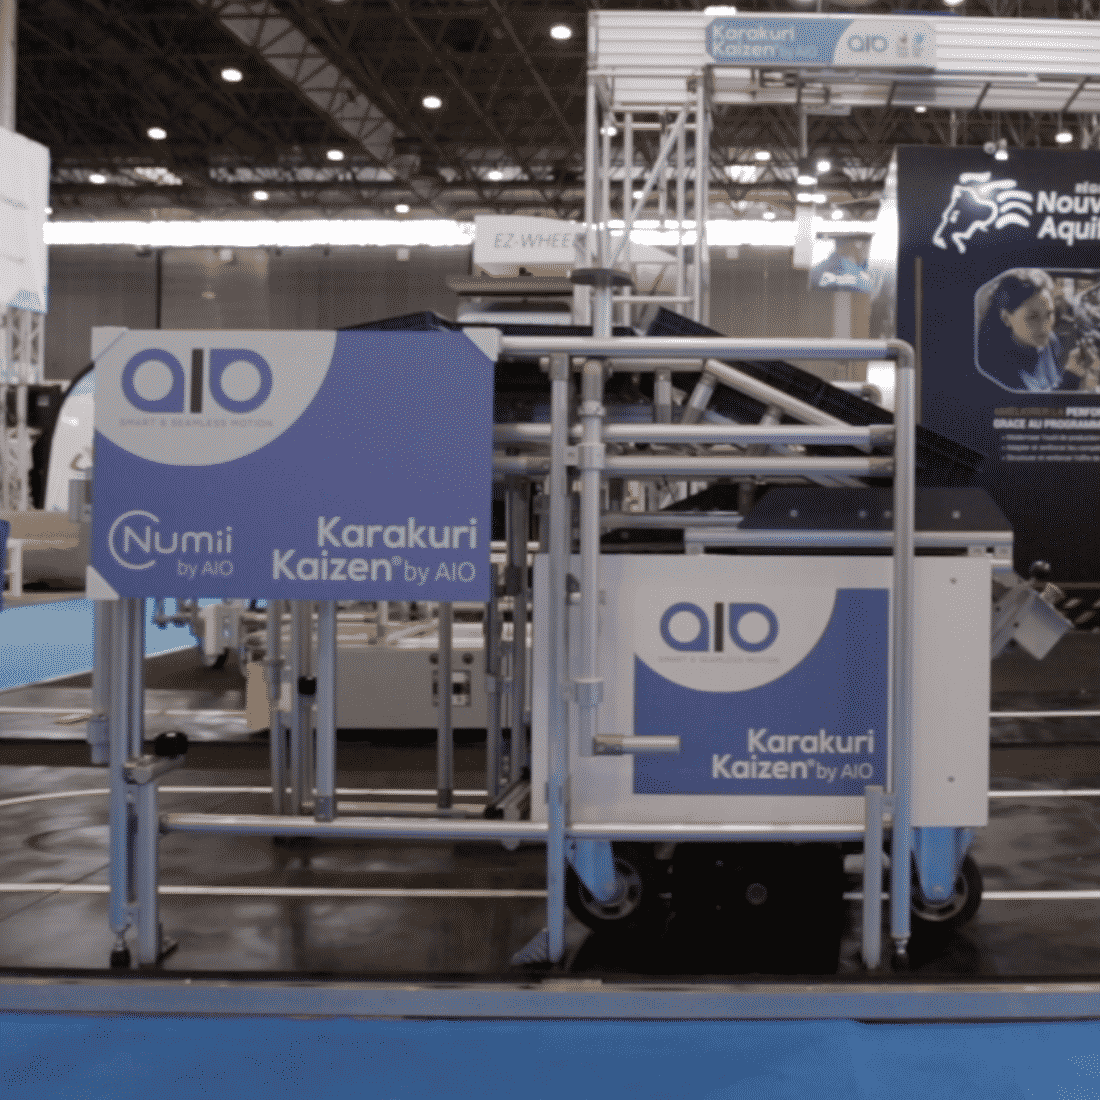 AGV Automatic guided vehicle karakuri Kaizen lean manufacturing